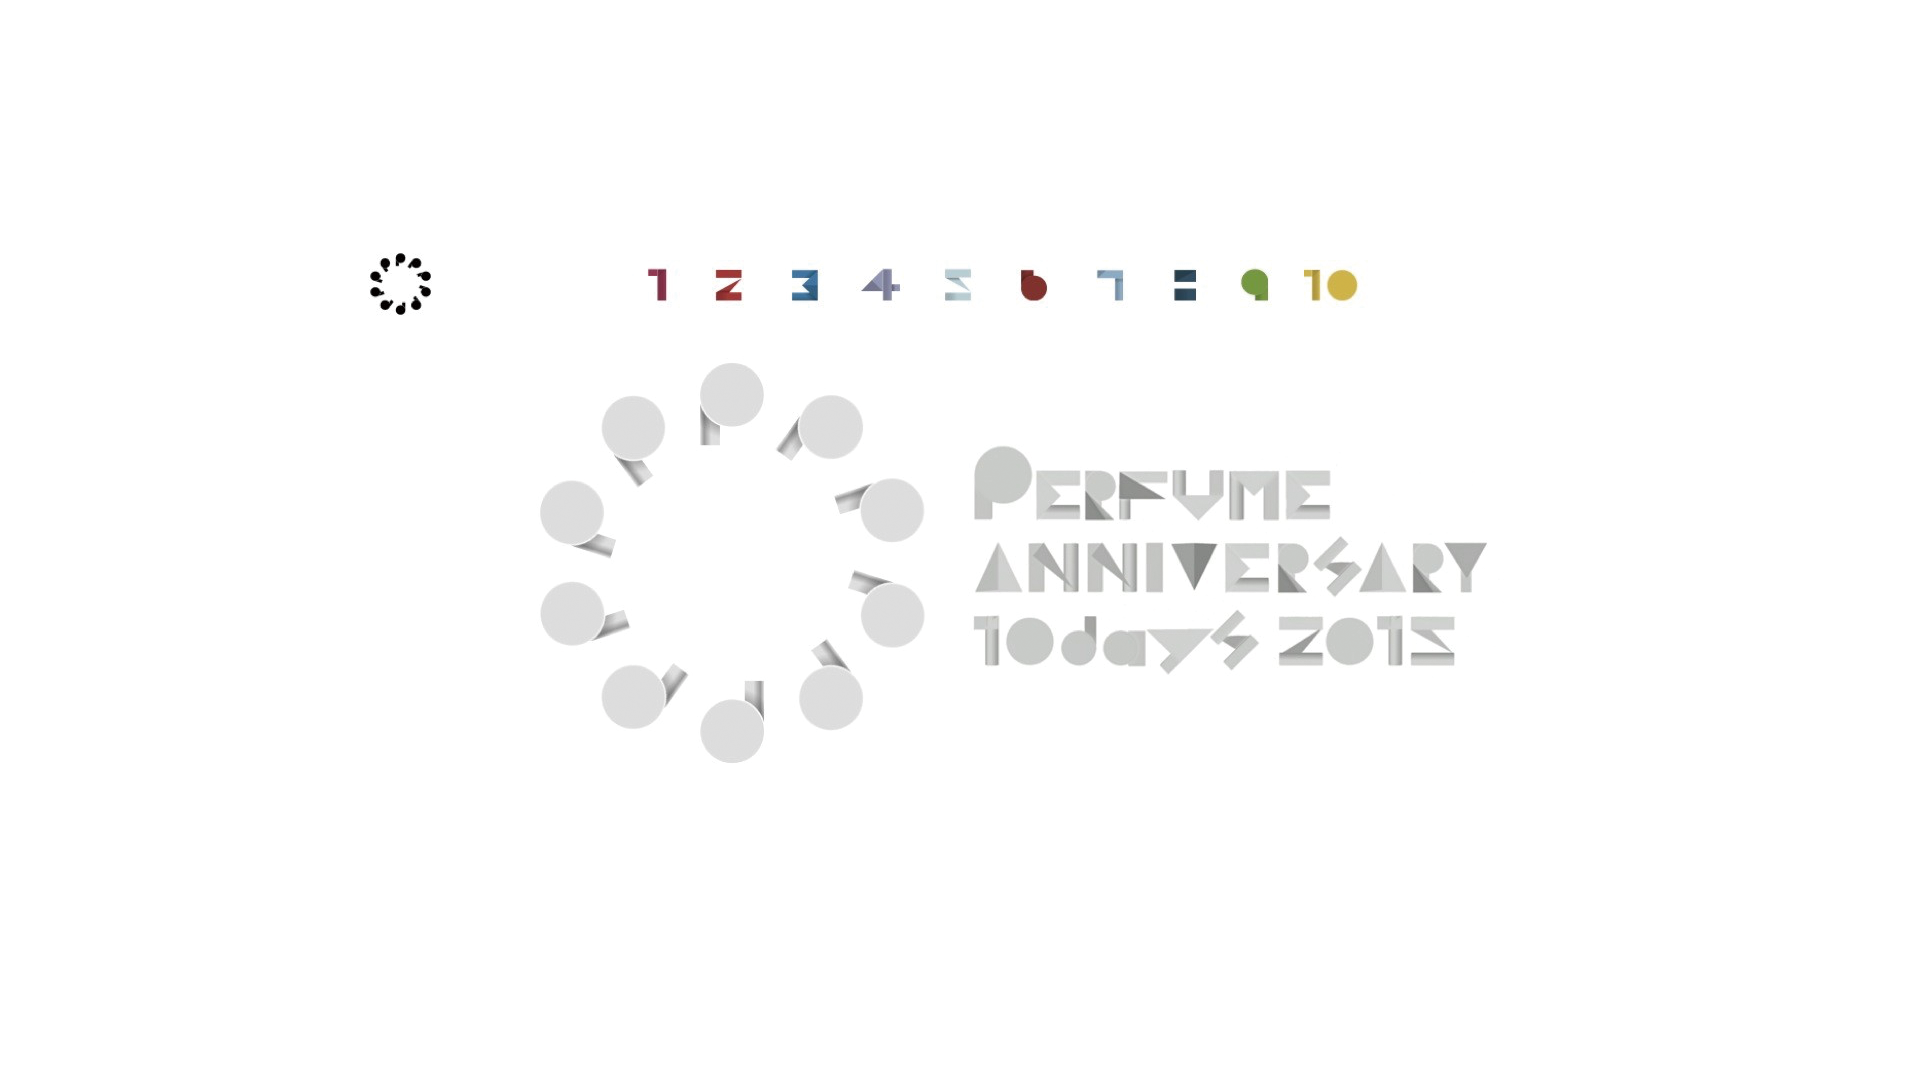 Perfume Anniversary 10days 2015 PPPPPPPPPP LIVE 3:5:6:9 /LOGO